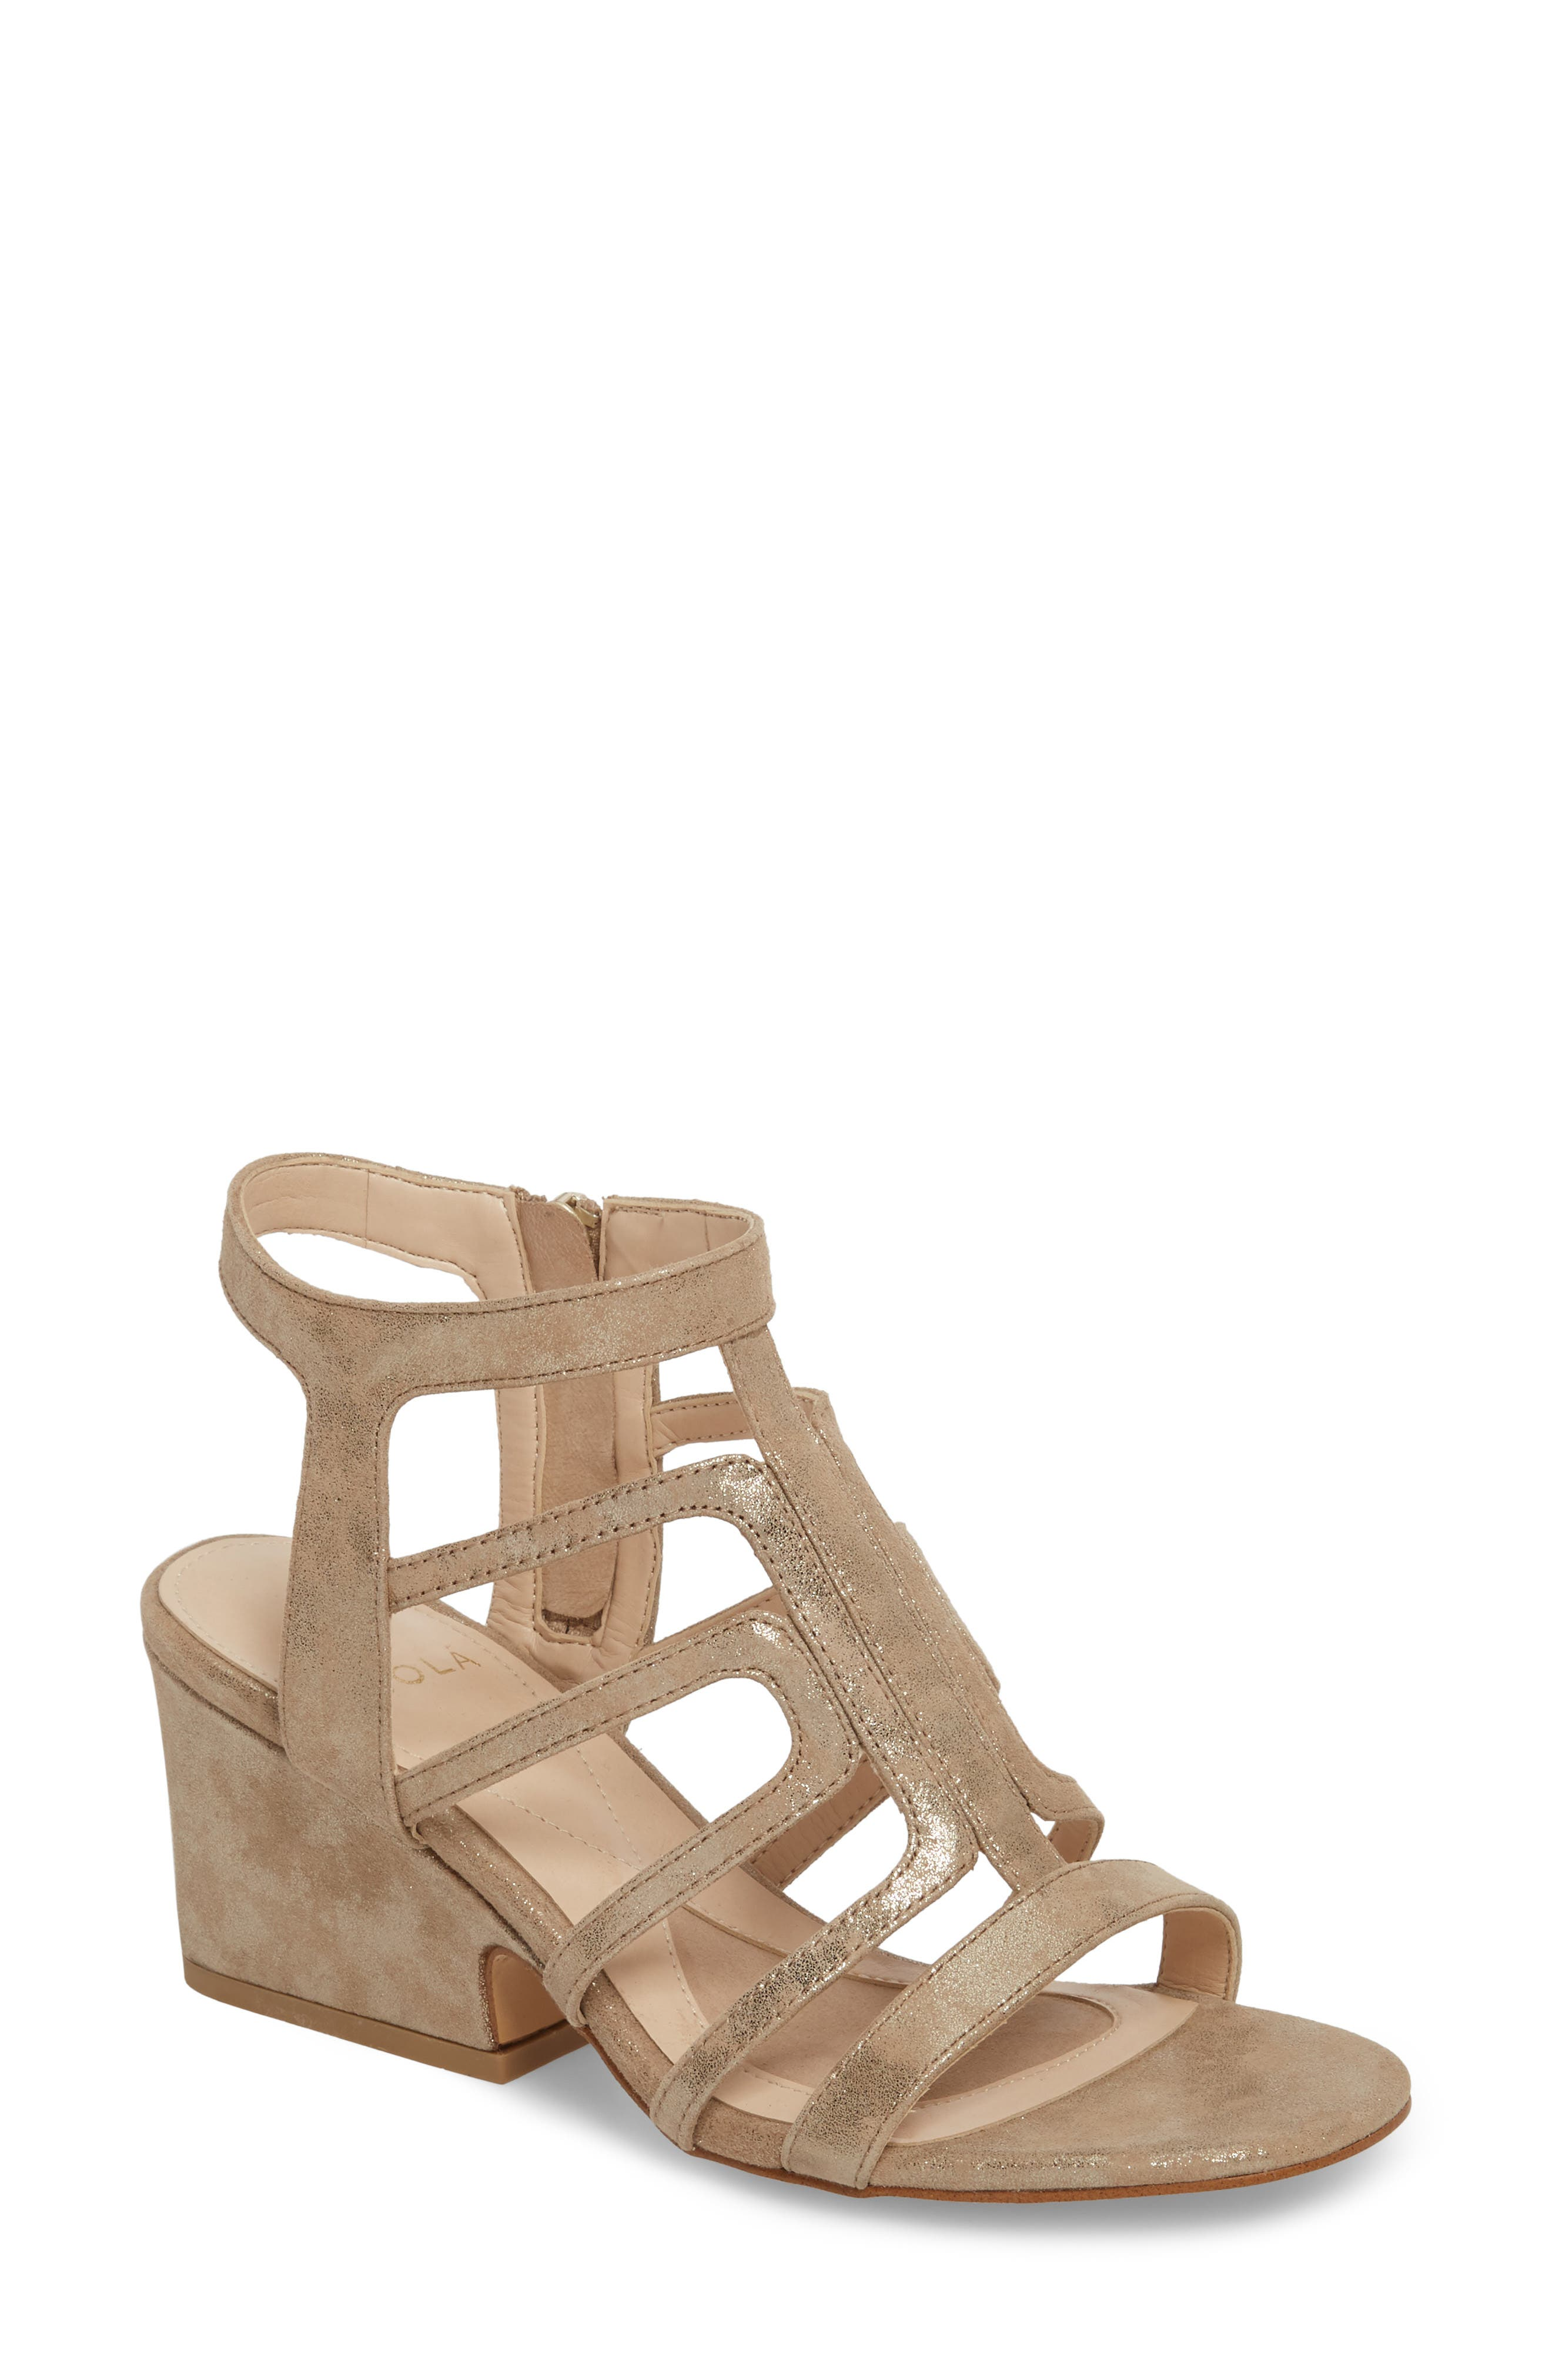 ISOLÁ, Lina Sandal, Main thumbnail 1, color, ANTHRACITE SUEDE